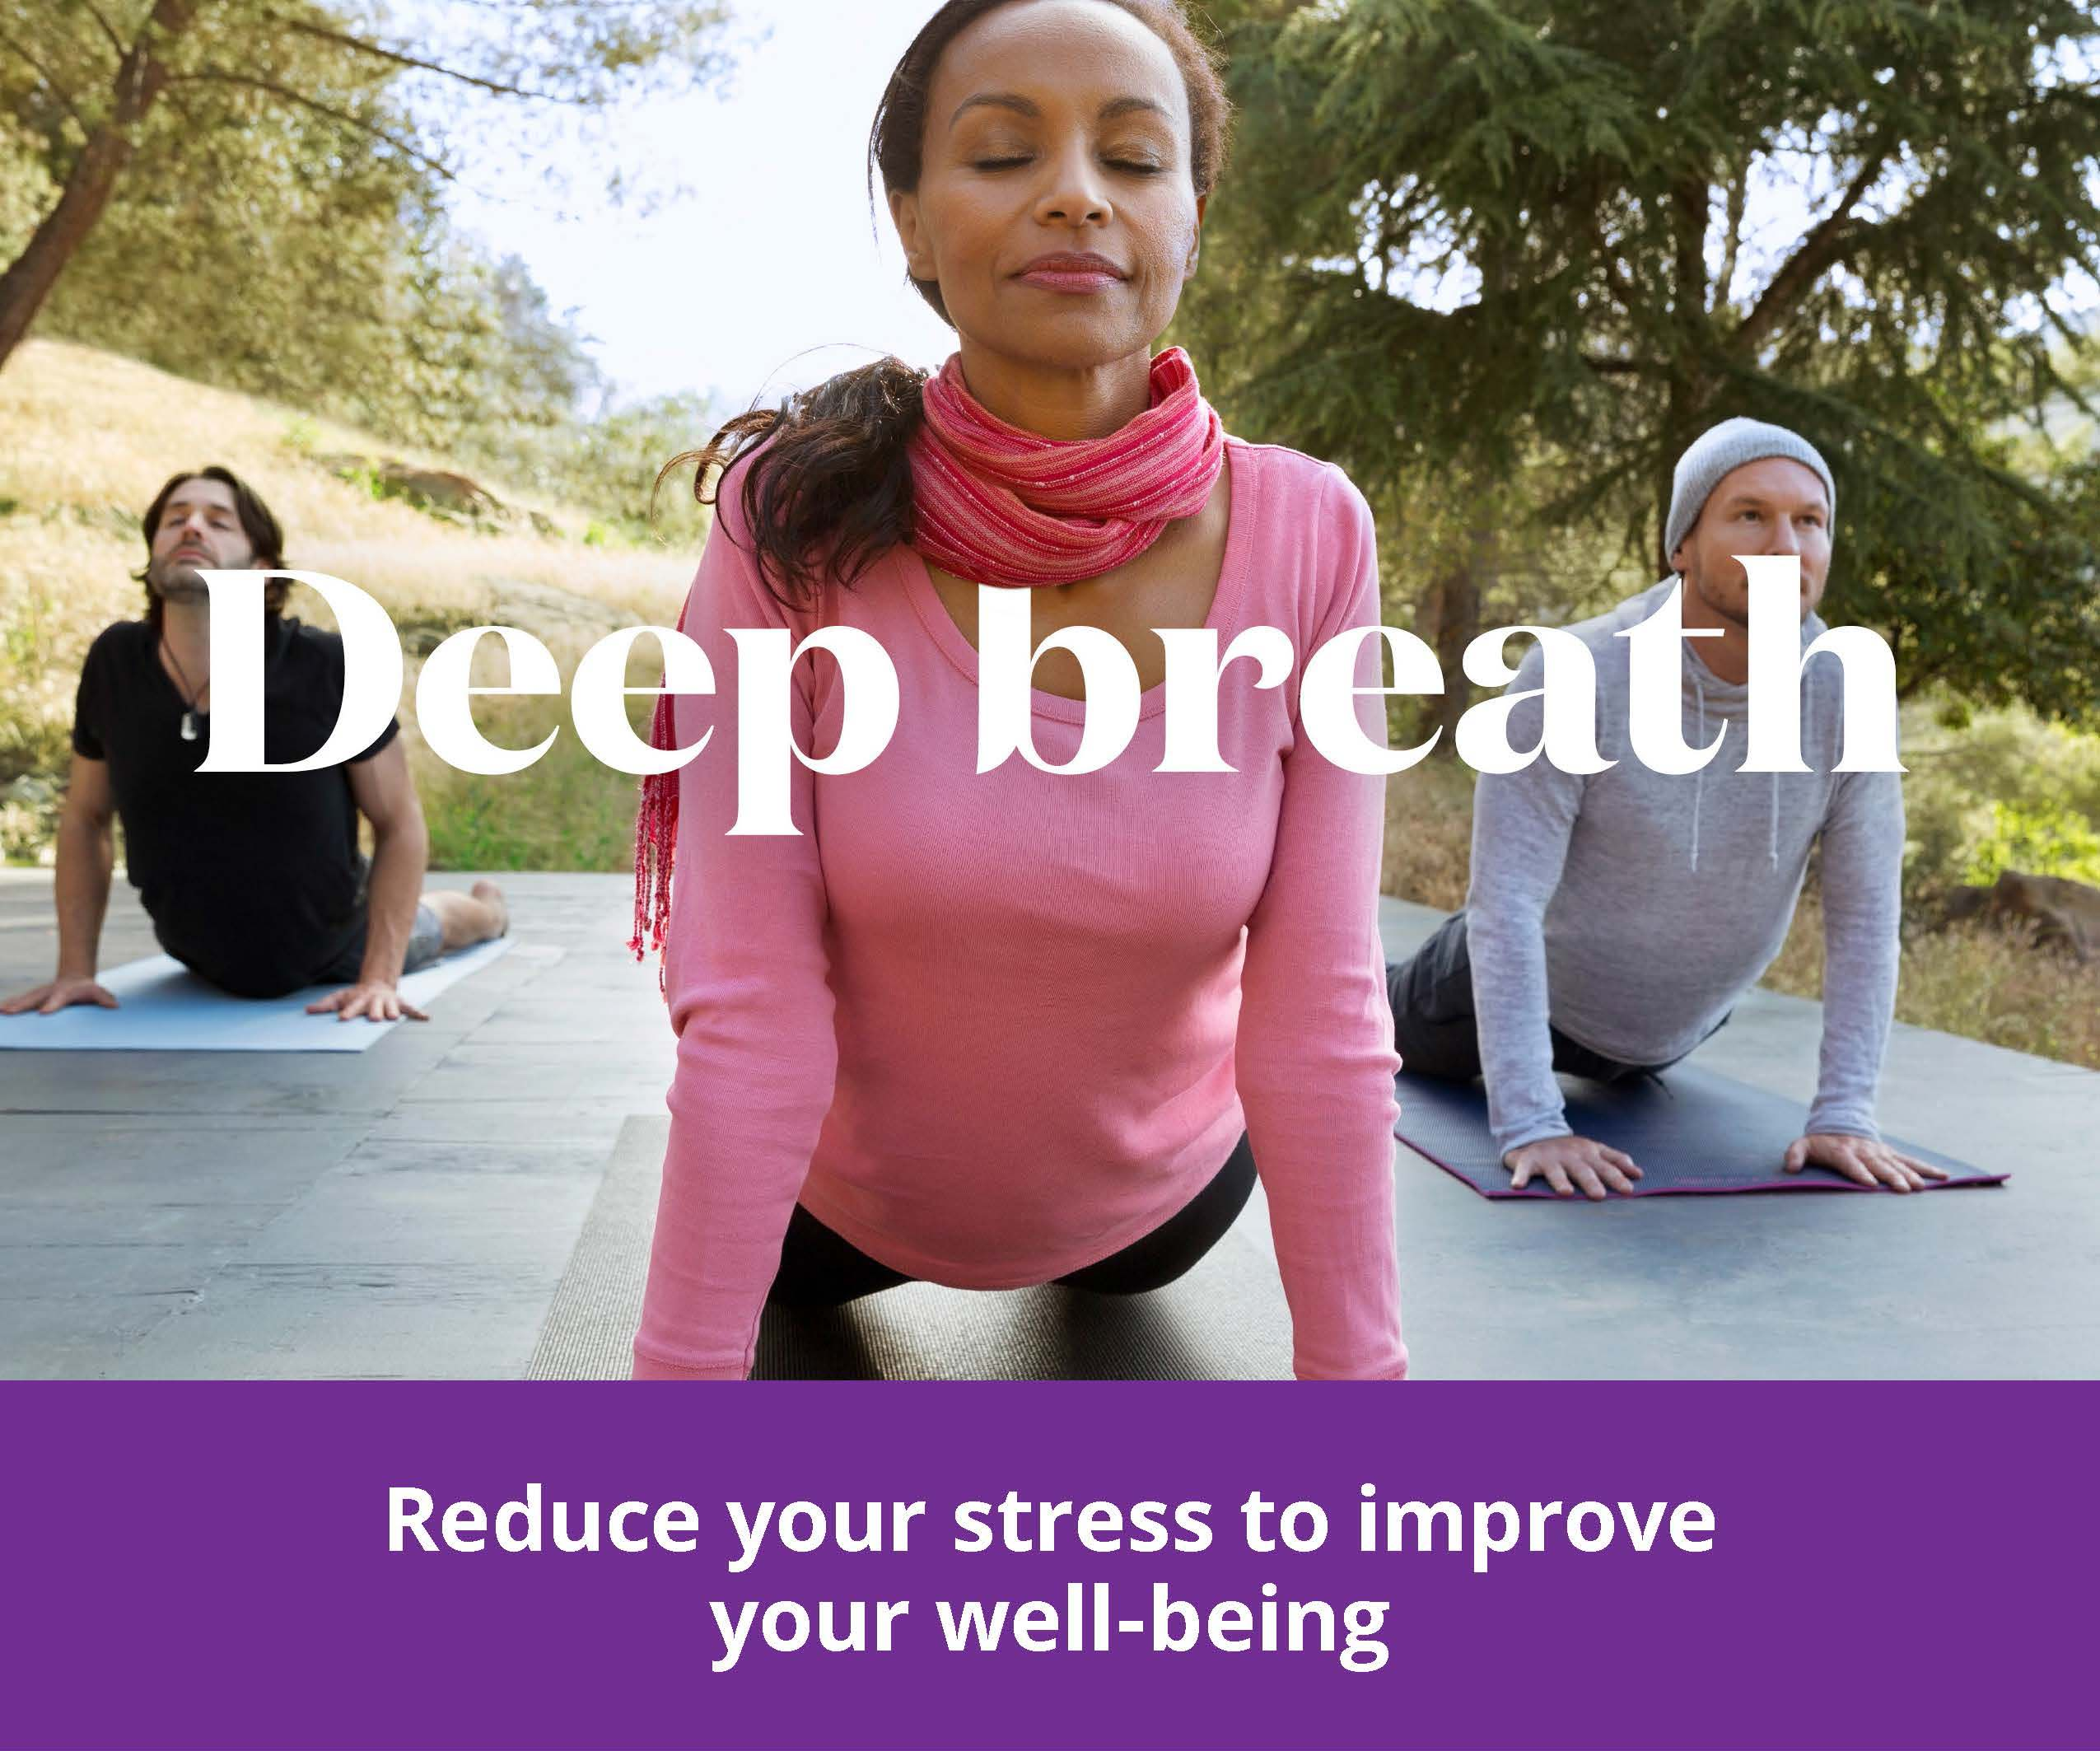 reduce-your-stress-cropped